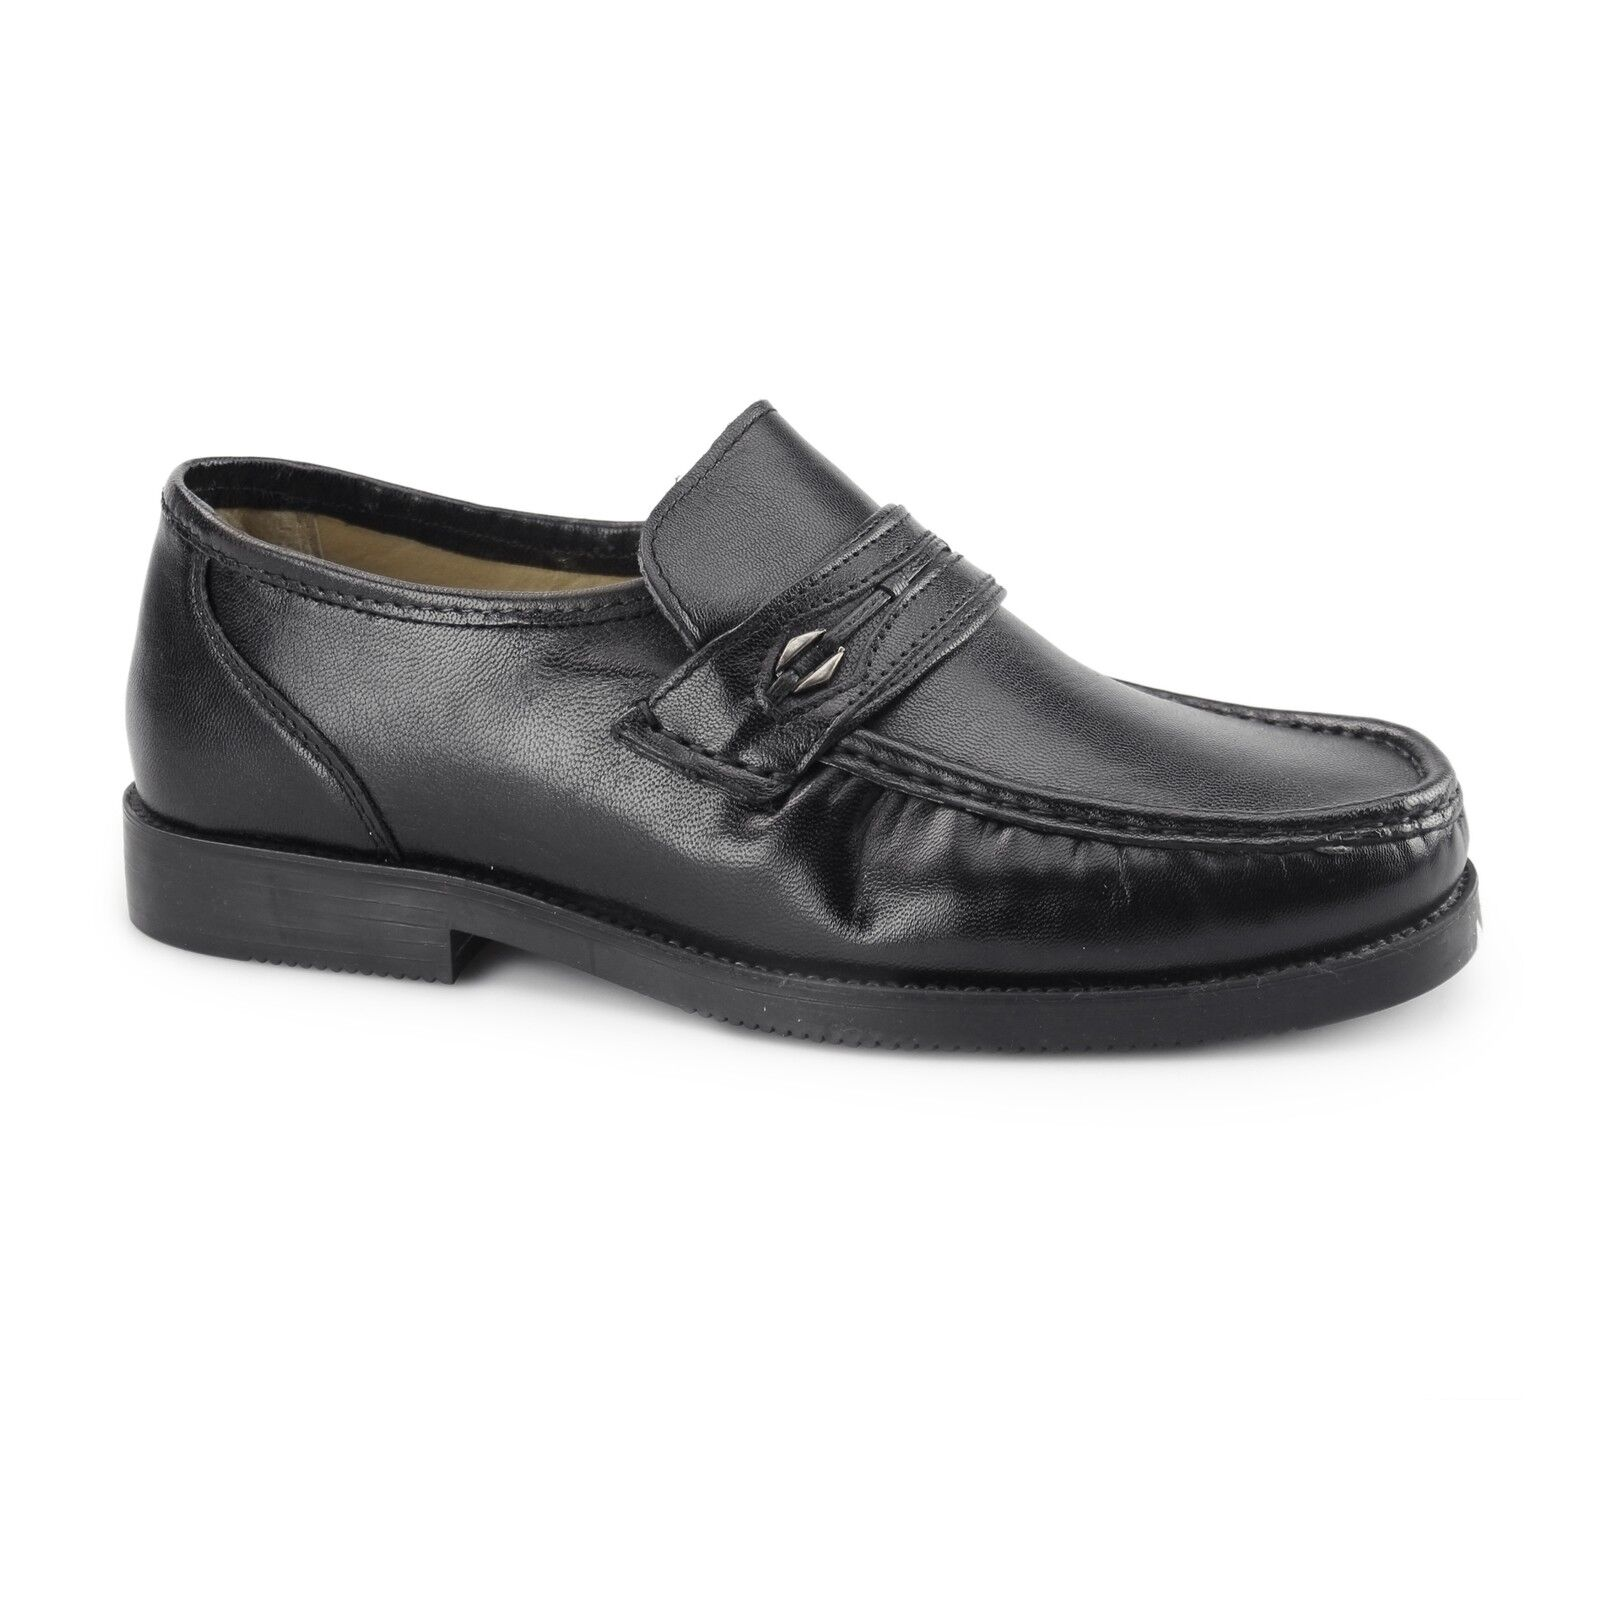 Tycoons BARRIE Mens Leather Extra Wide Fit Slip On Comfort Moccasins shoes Black